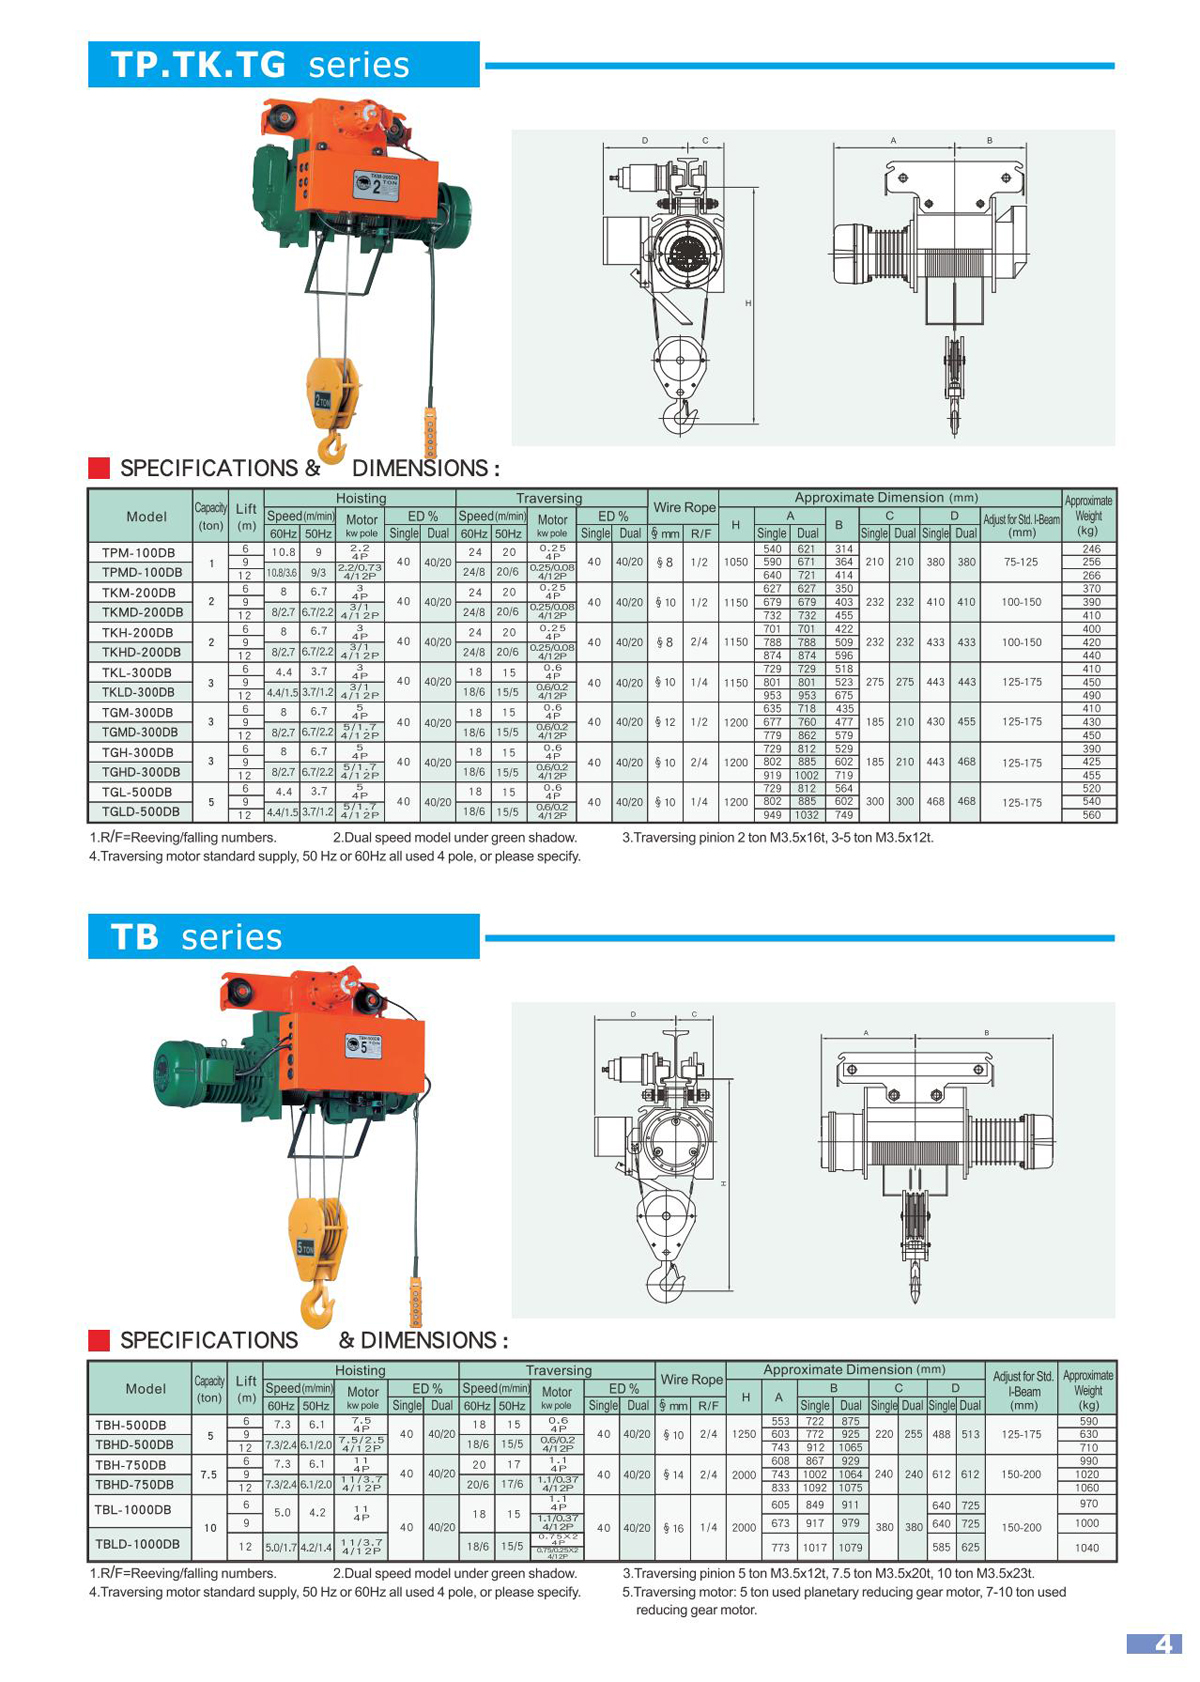 Coffing 1 Ton Wiring Diagram Control Powerwinch Chain Hoist